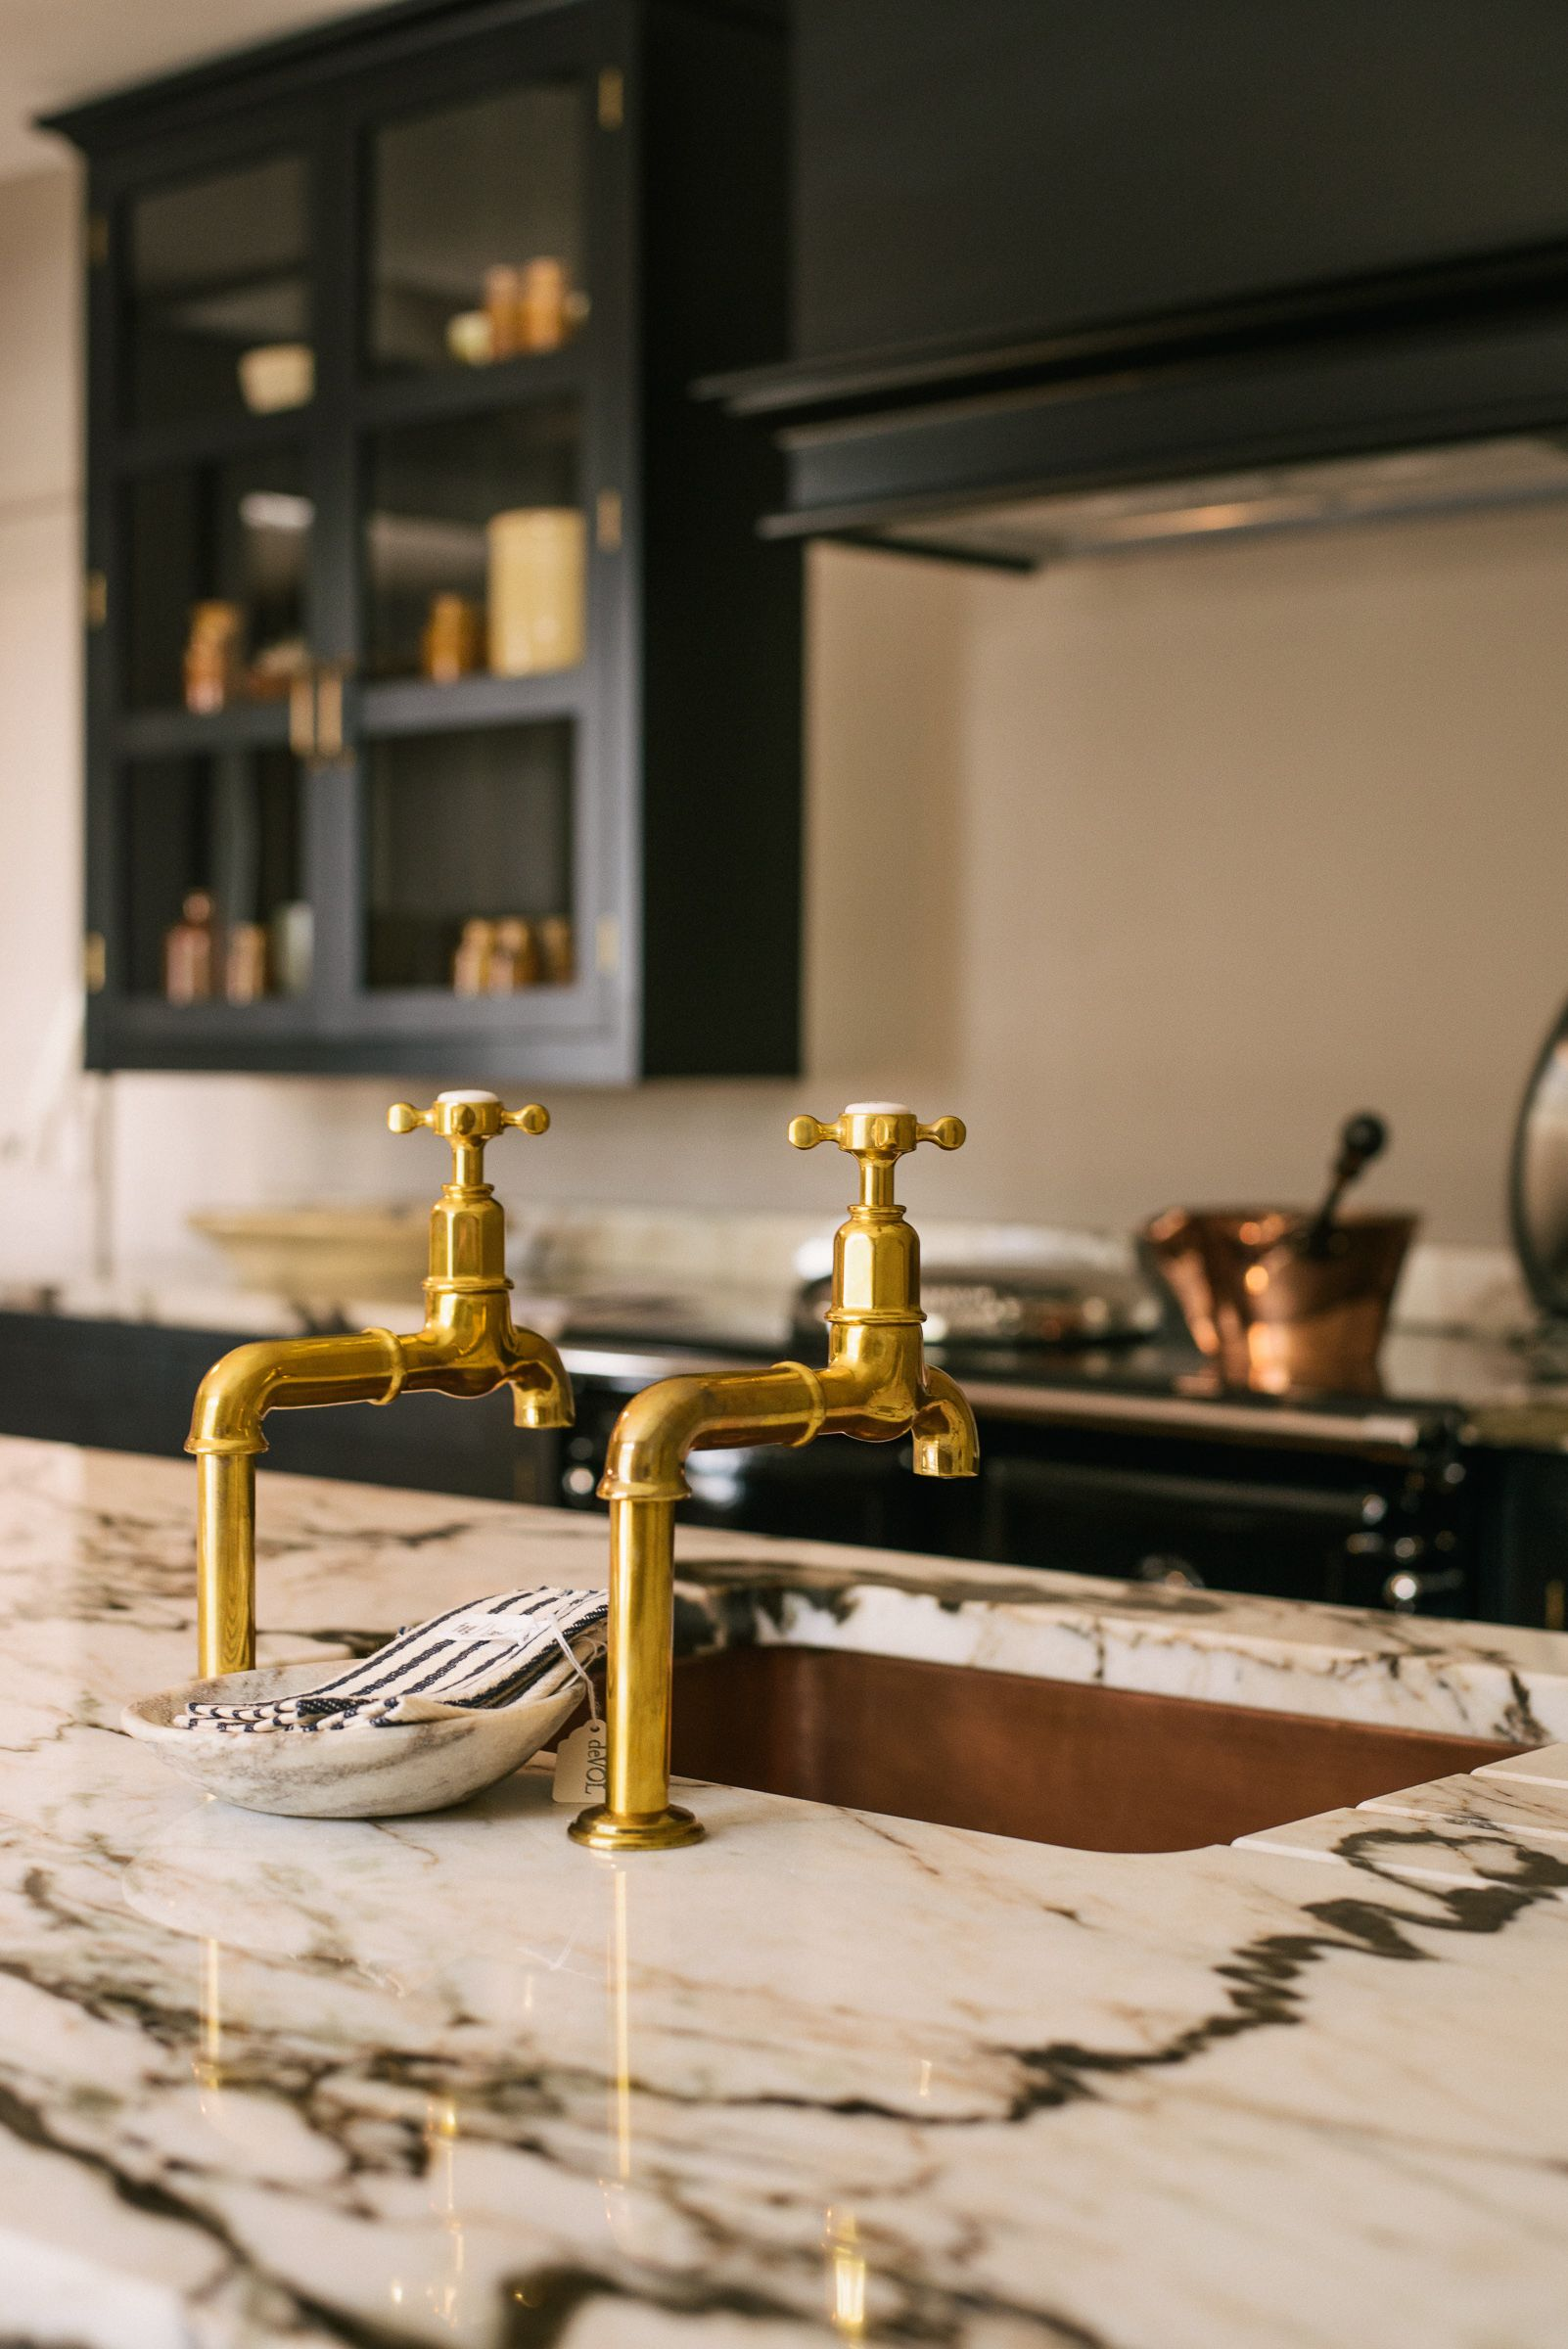 beautiful cool kitchen worktops. DeVOL Aged Brass Taps, San Simone Quartzite Worktops And A Beautiful Copper Sink Look So Cool In Our New Millhouse Kitchen Showroom At Cotes Mill S